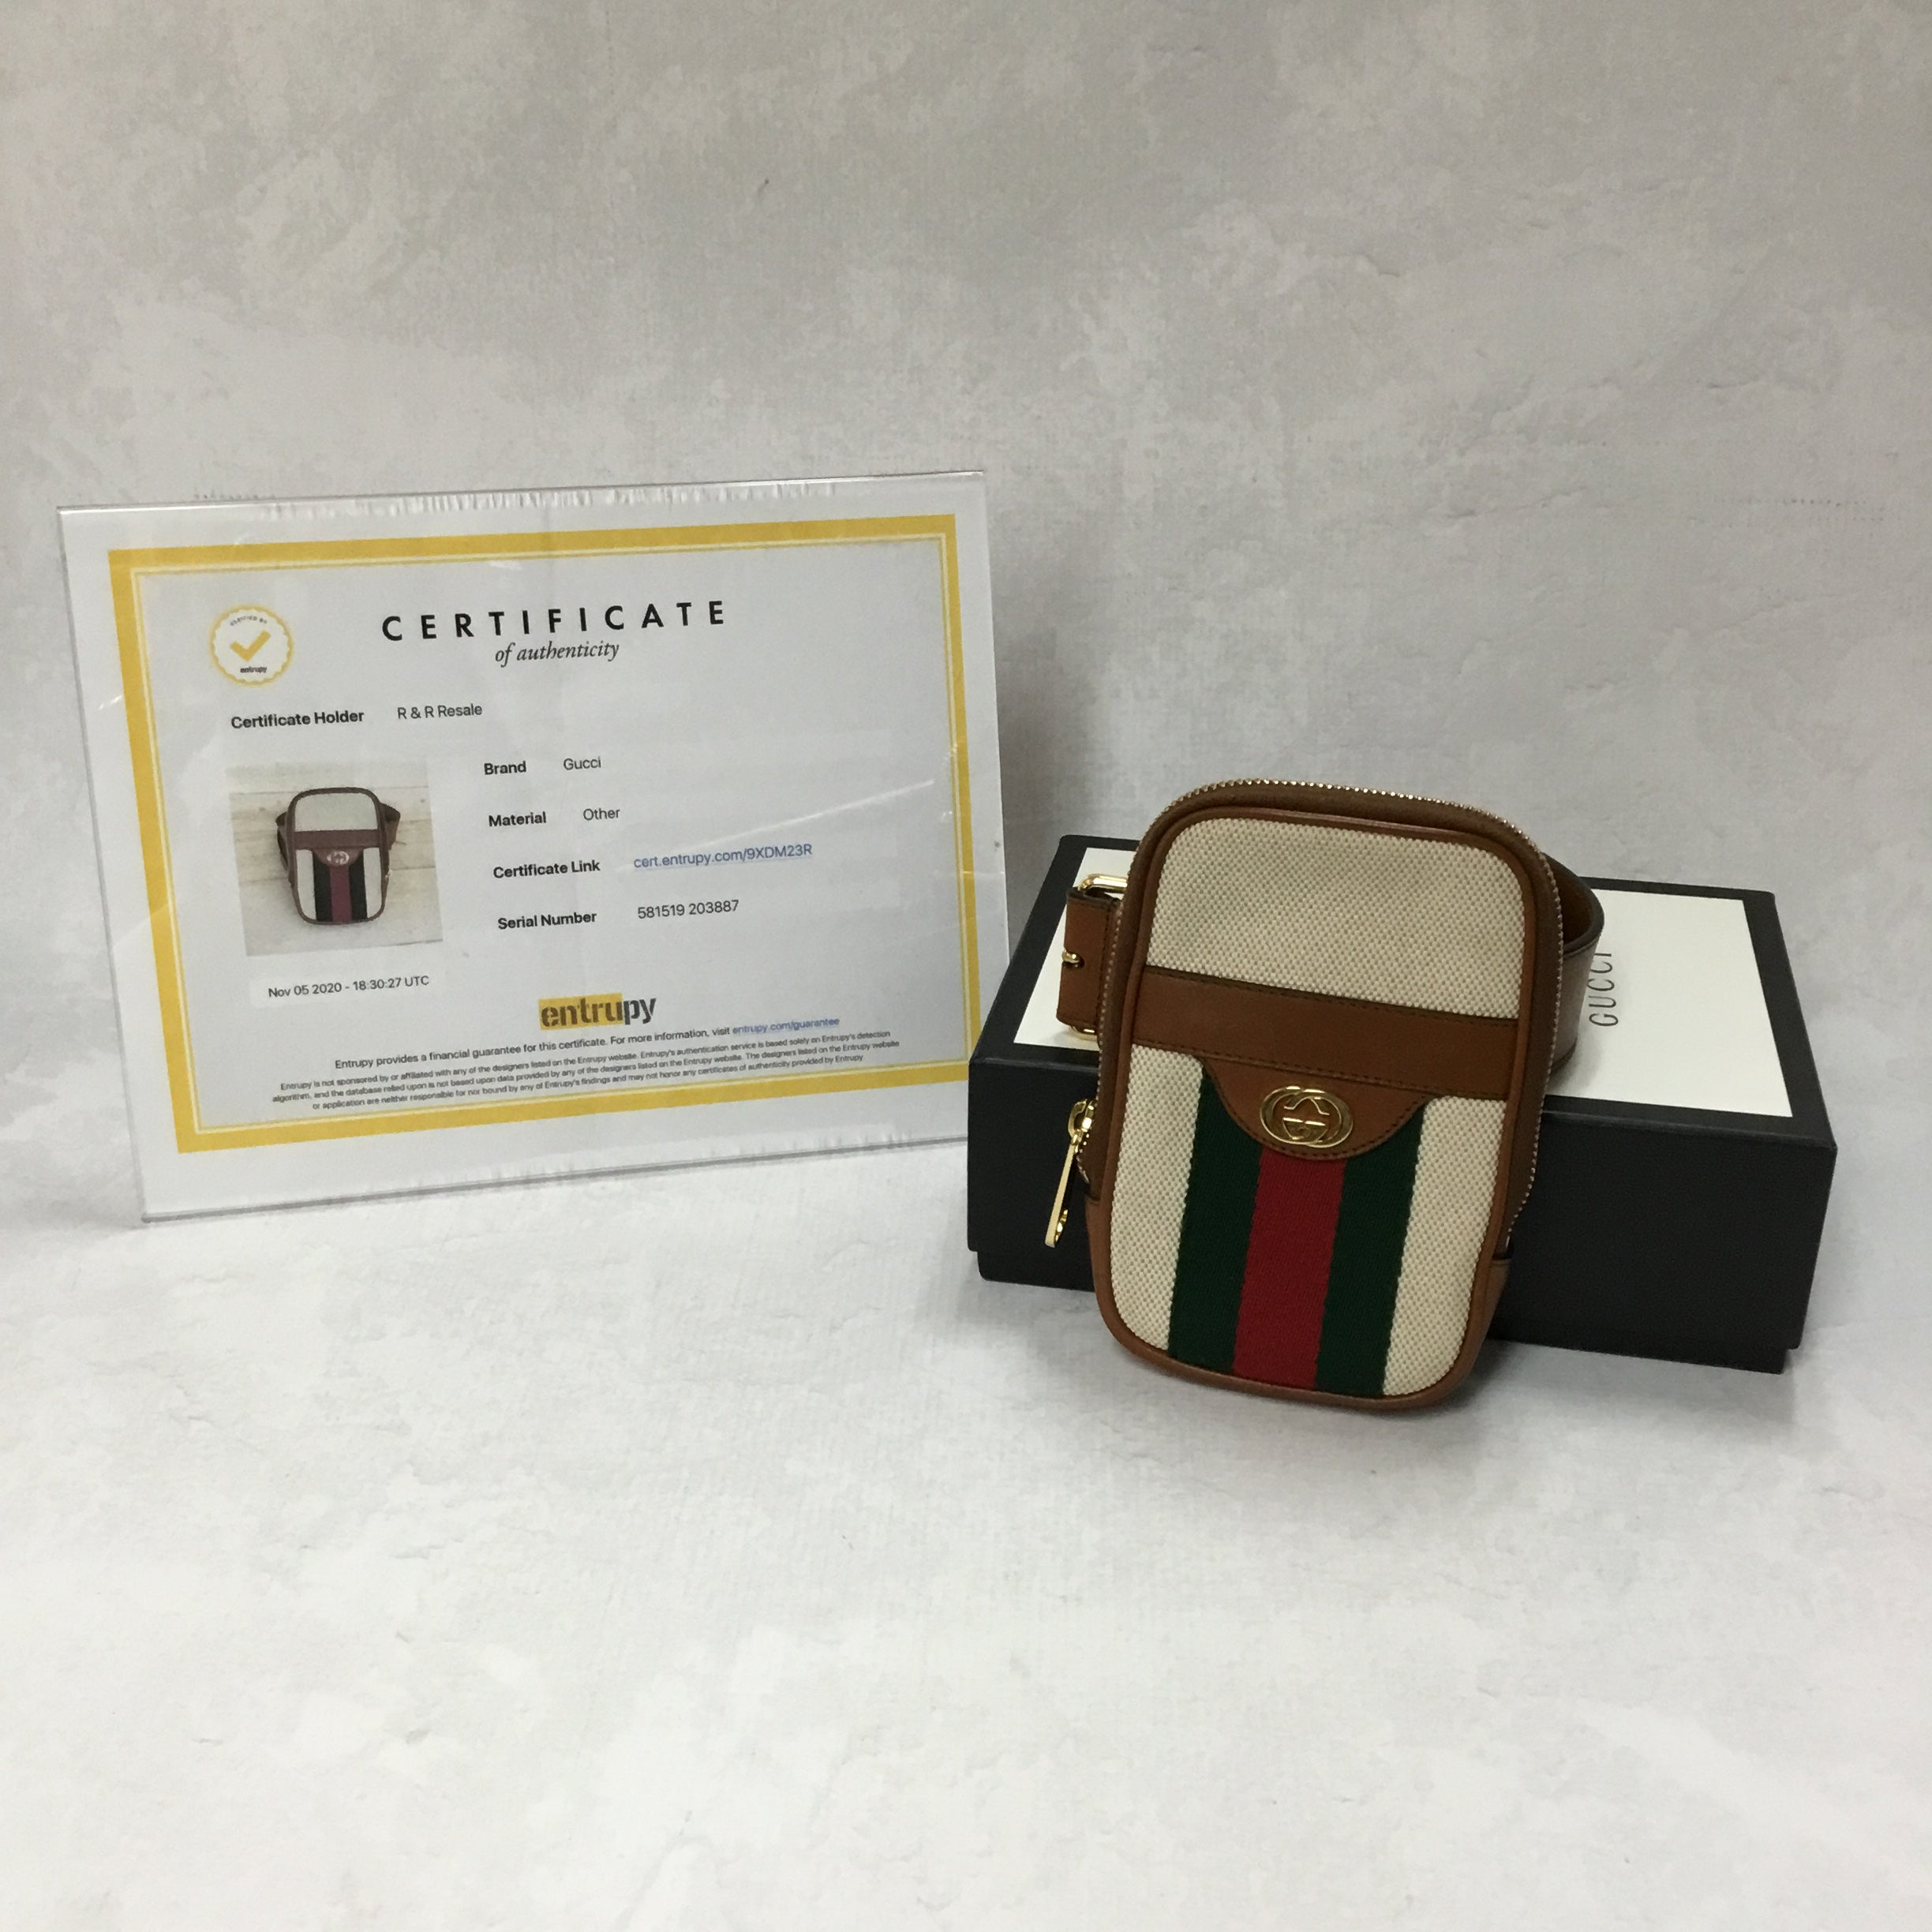 Primary Photo - BRAND: GUCCI <BR>STYLE: HANDBAG DESIGNER <BR>COLOR: IVORY <BR>SIZE: SMALL <BR>OTHER INFO: CANVAS BELTED IPHONE CASE <BR>SKU: 194-19414-36992<BR>70*28<BR>COMES WITH BOX AND DUST BAG